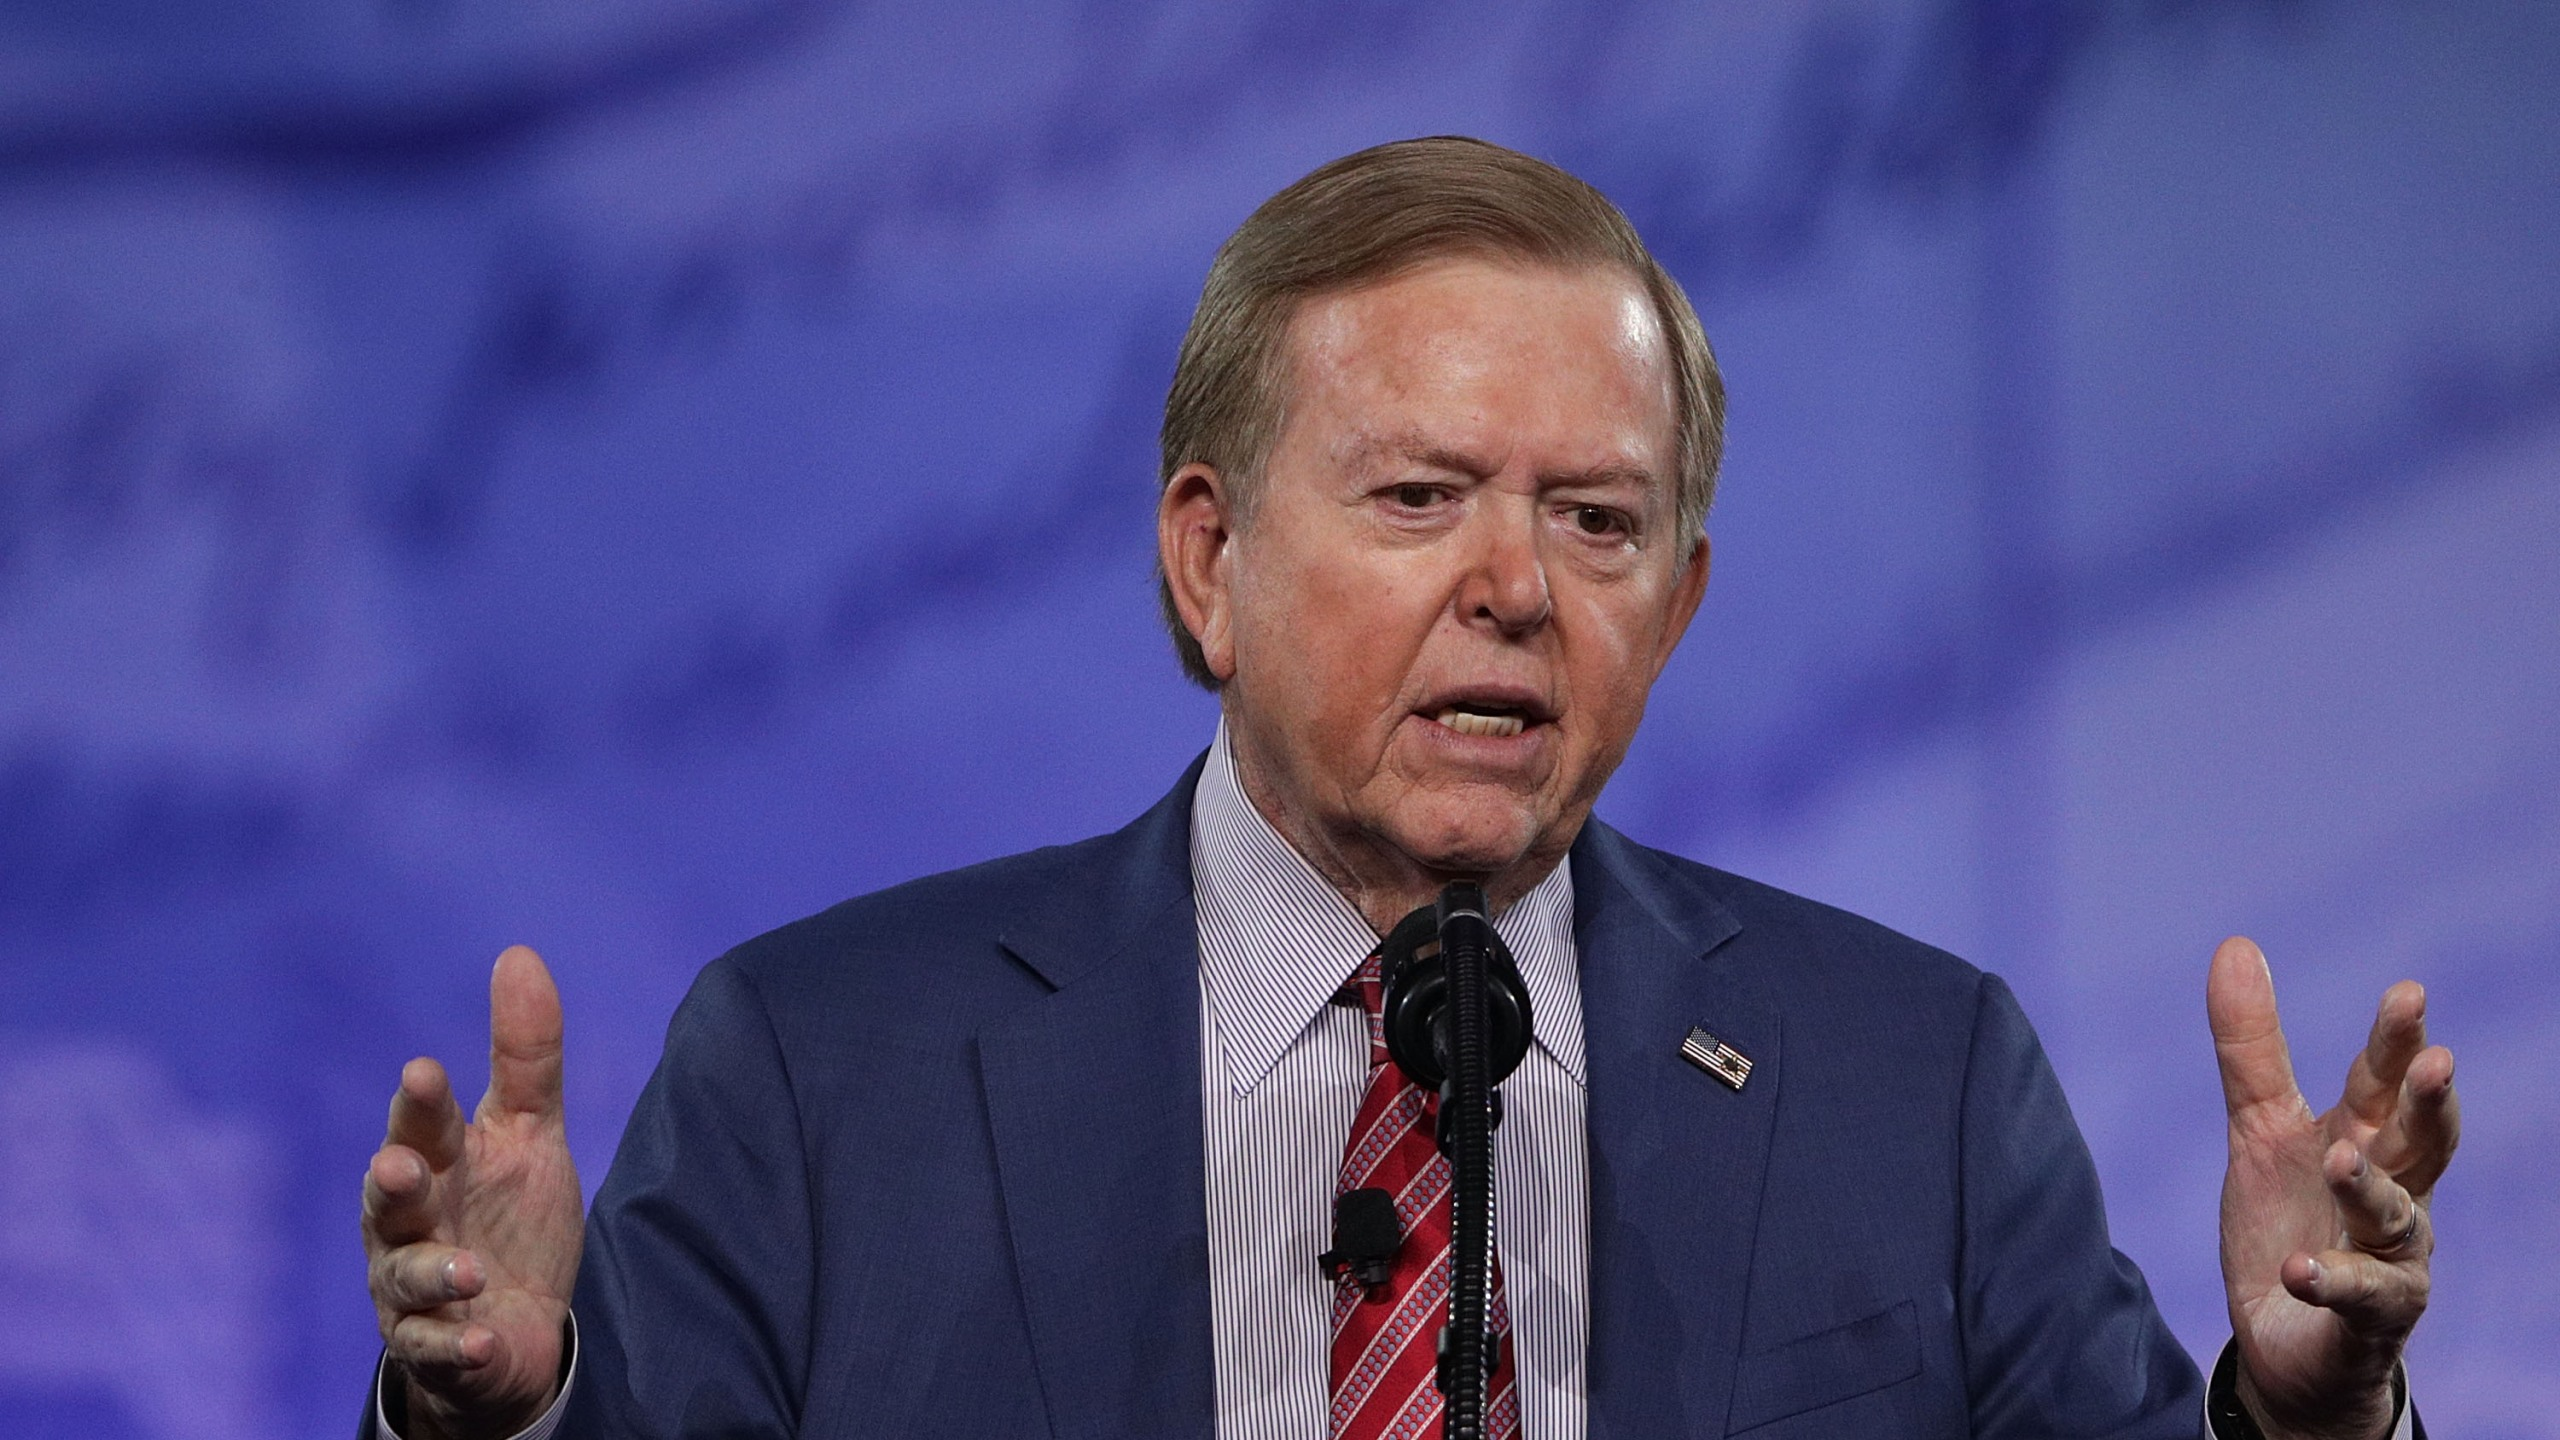 Lou Dobbs of Fox Business Network speaks during the Conservative Political Action Conference at the Gaylord National Resort and Convention Center in National Harbor, Maryland on Feb. 24, 2017. (Alex Wong/Getty Images)